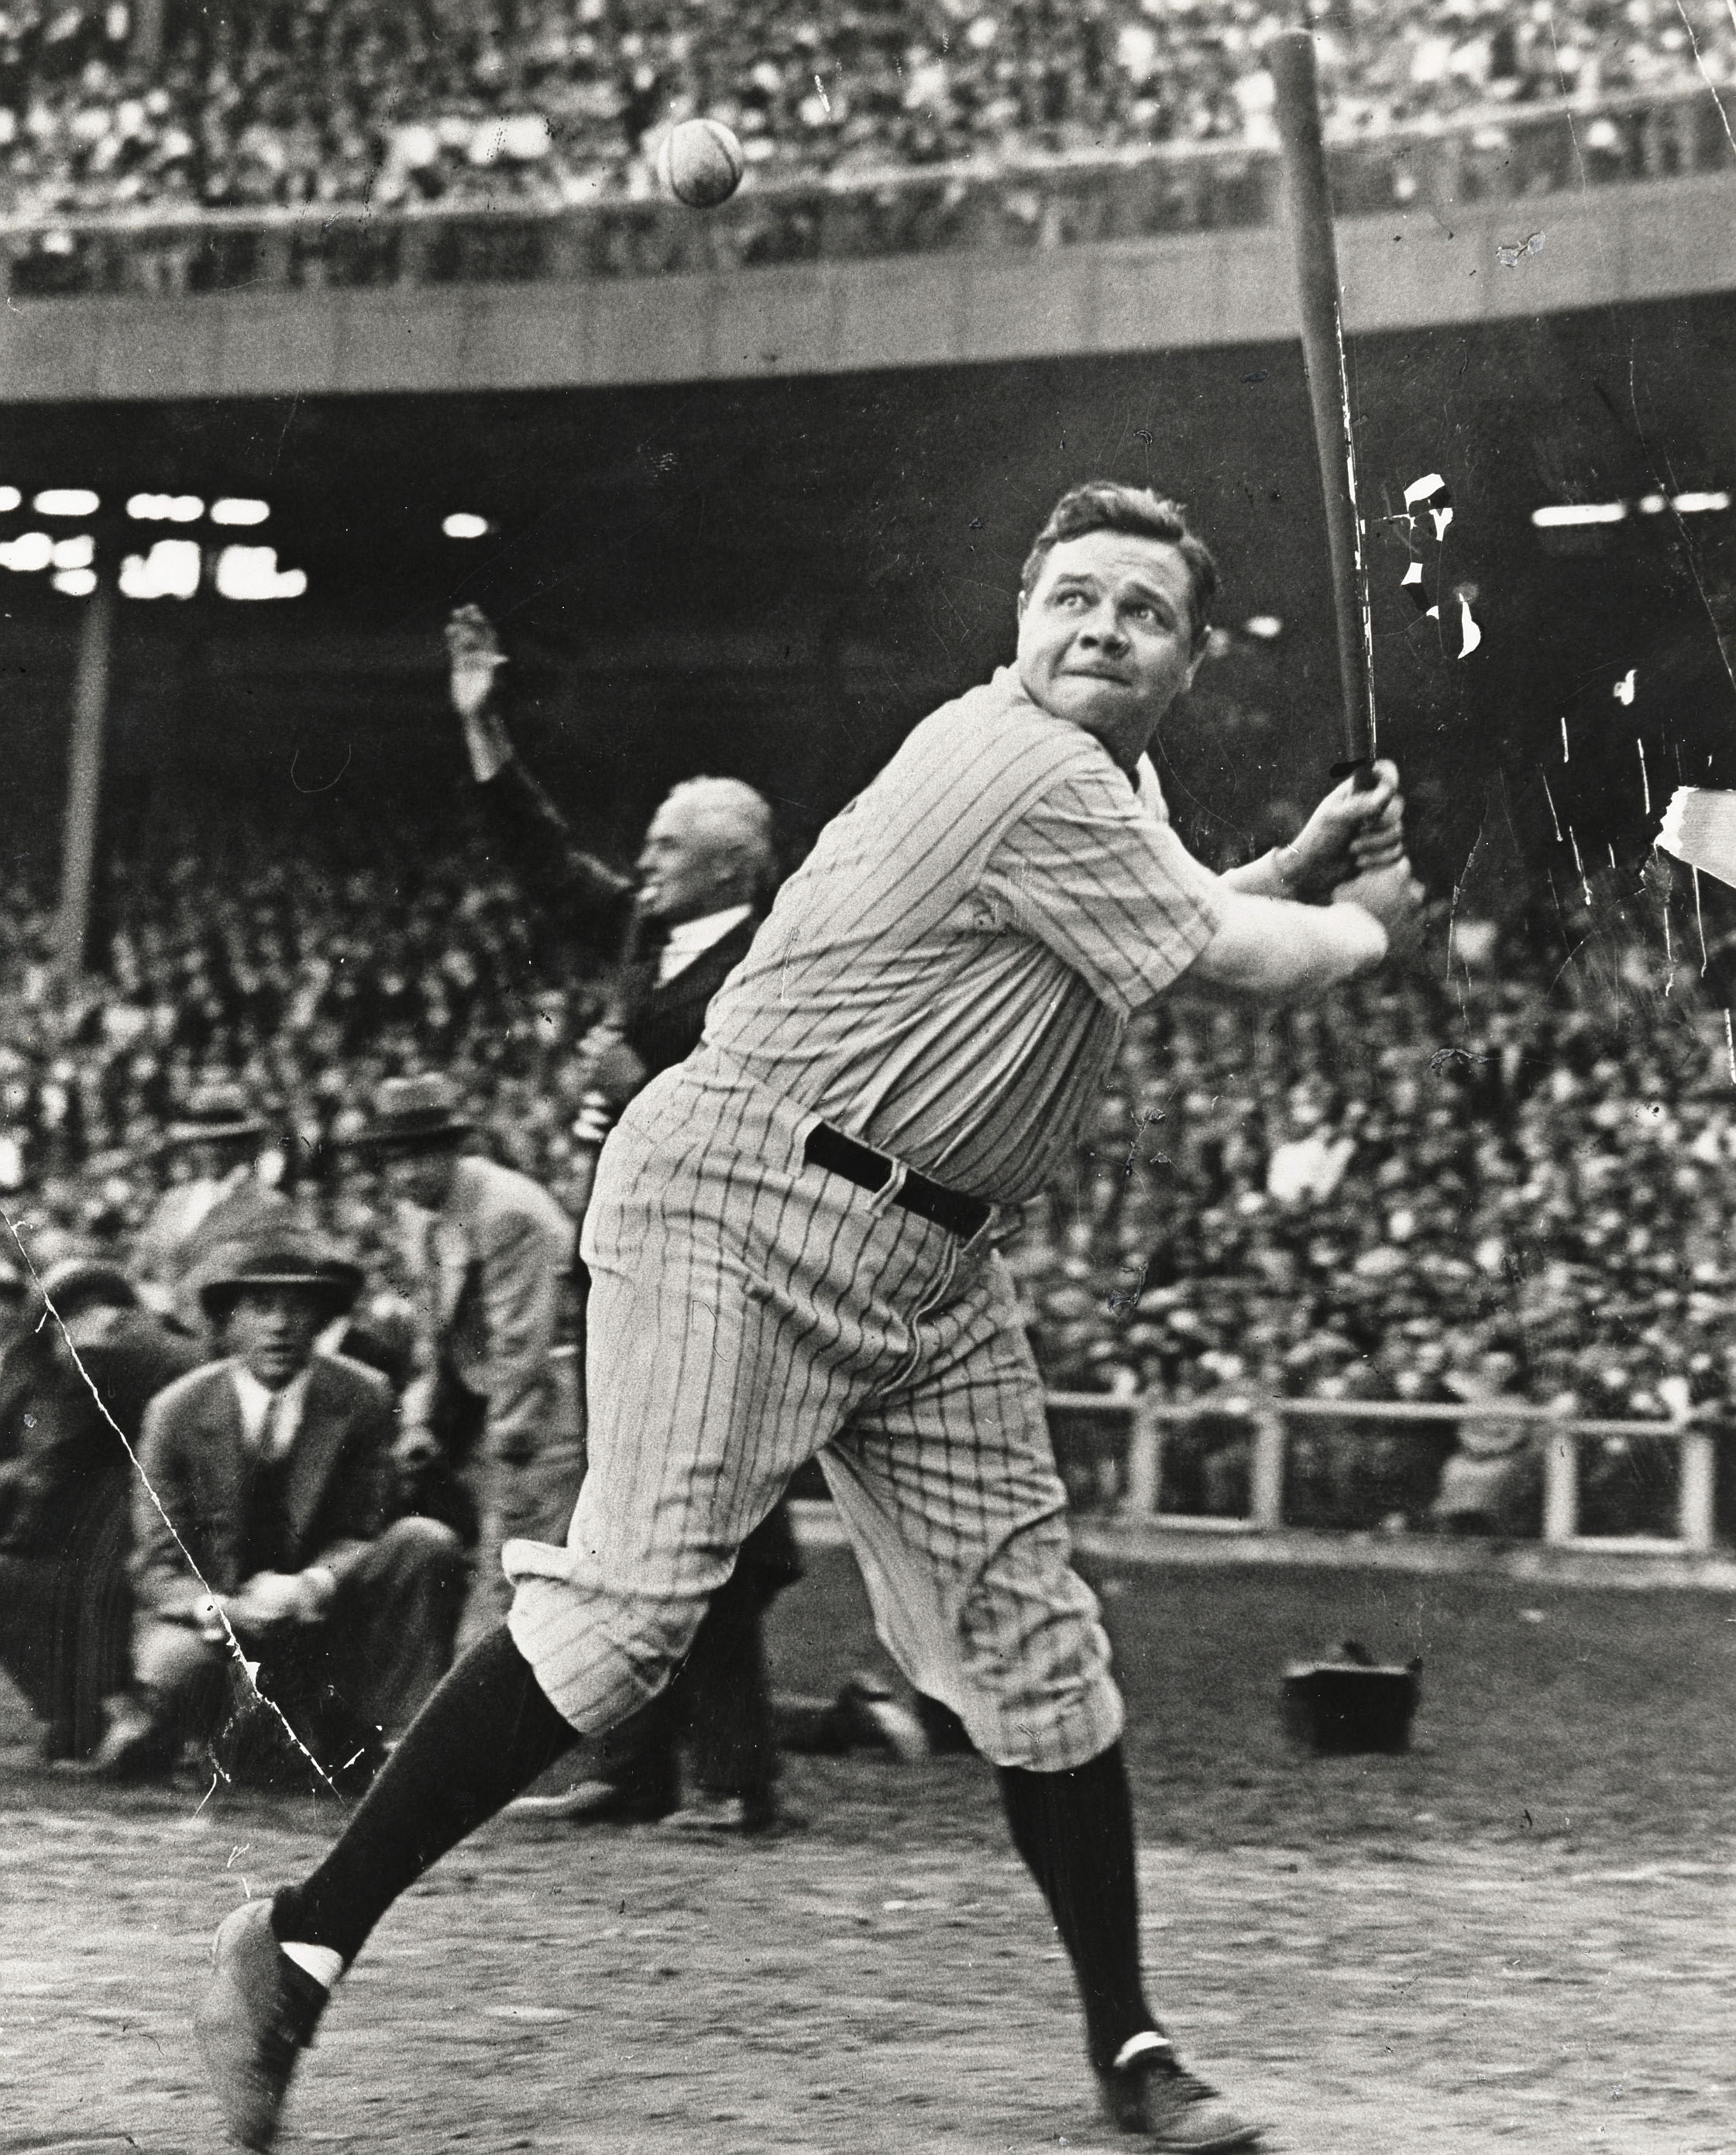 A Picture Of Babe Ruth